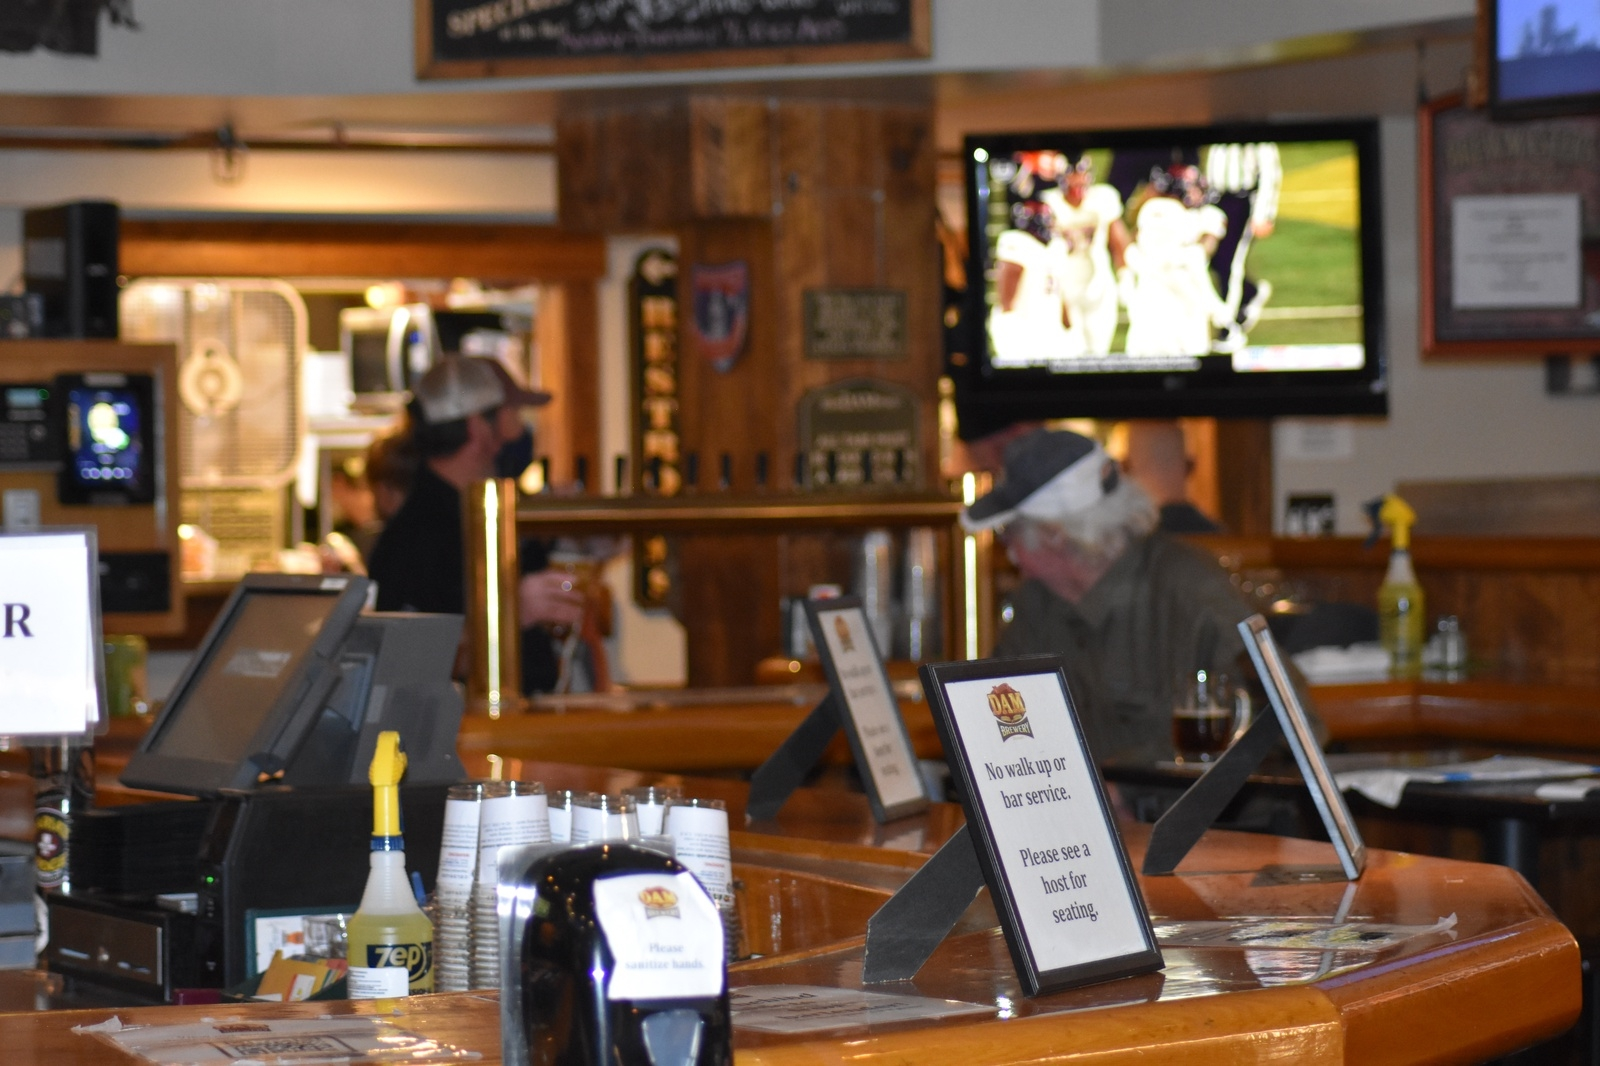 A bartender stands ready to serve guests at Dillon Dam Brewery on Wednesday, Nov. 18. On Sunday, Nov. 22, Summit County will move into level red, which will prohibit indoor dining. | Photo by Taylor Sienkiewicz / tsienkiewicz@summitdaily.com